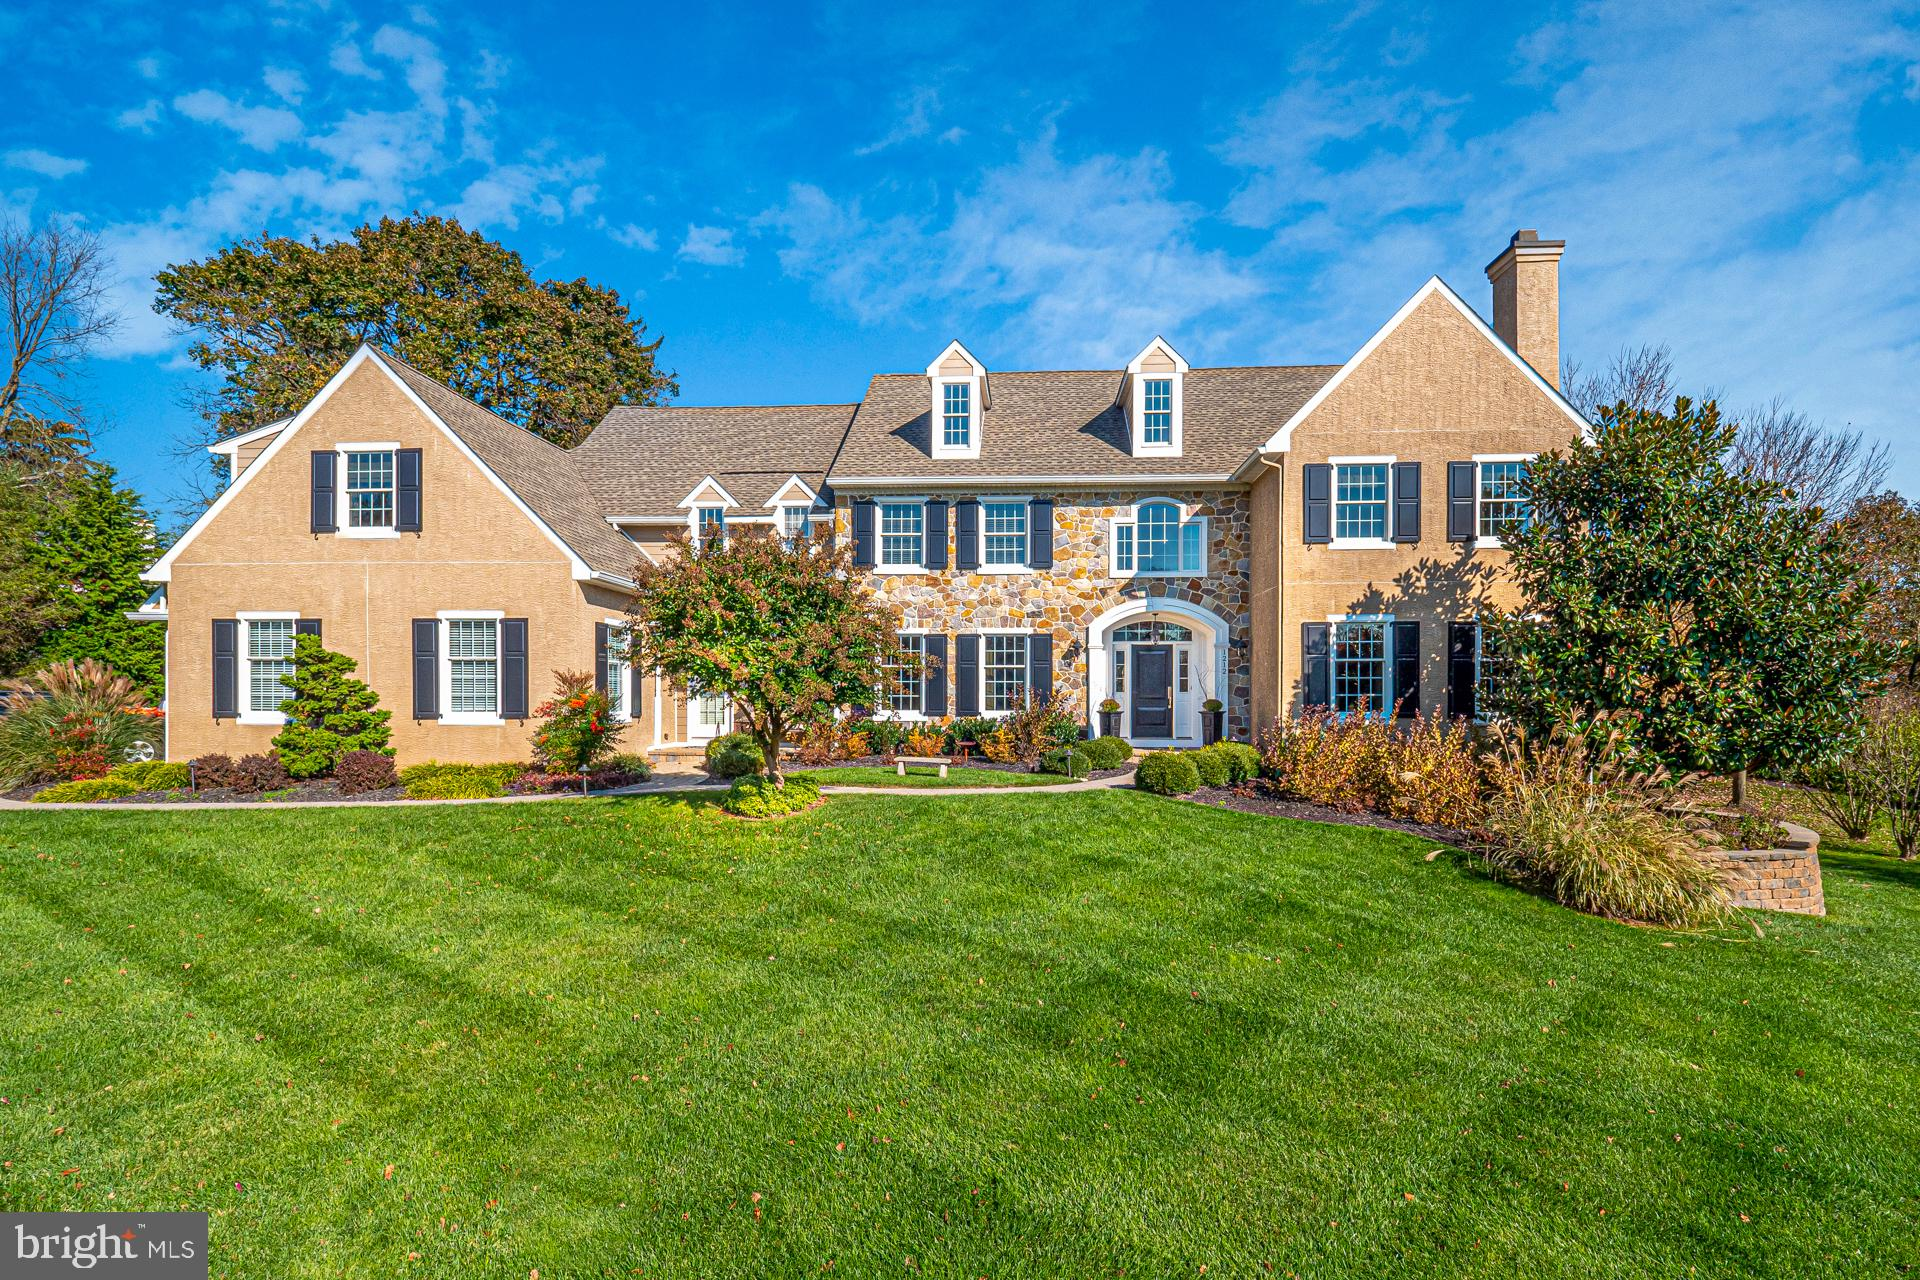 1212 HADLEIGH DRIVE, WEST CHESTER, PA 19380